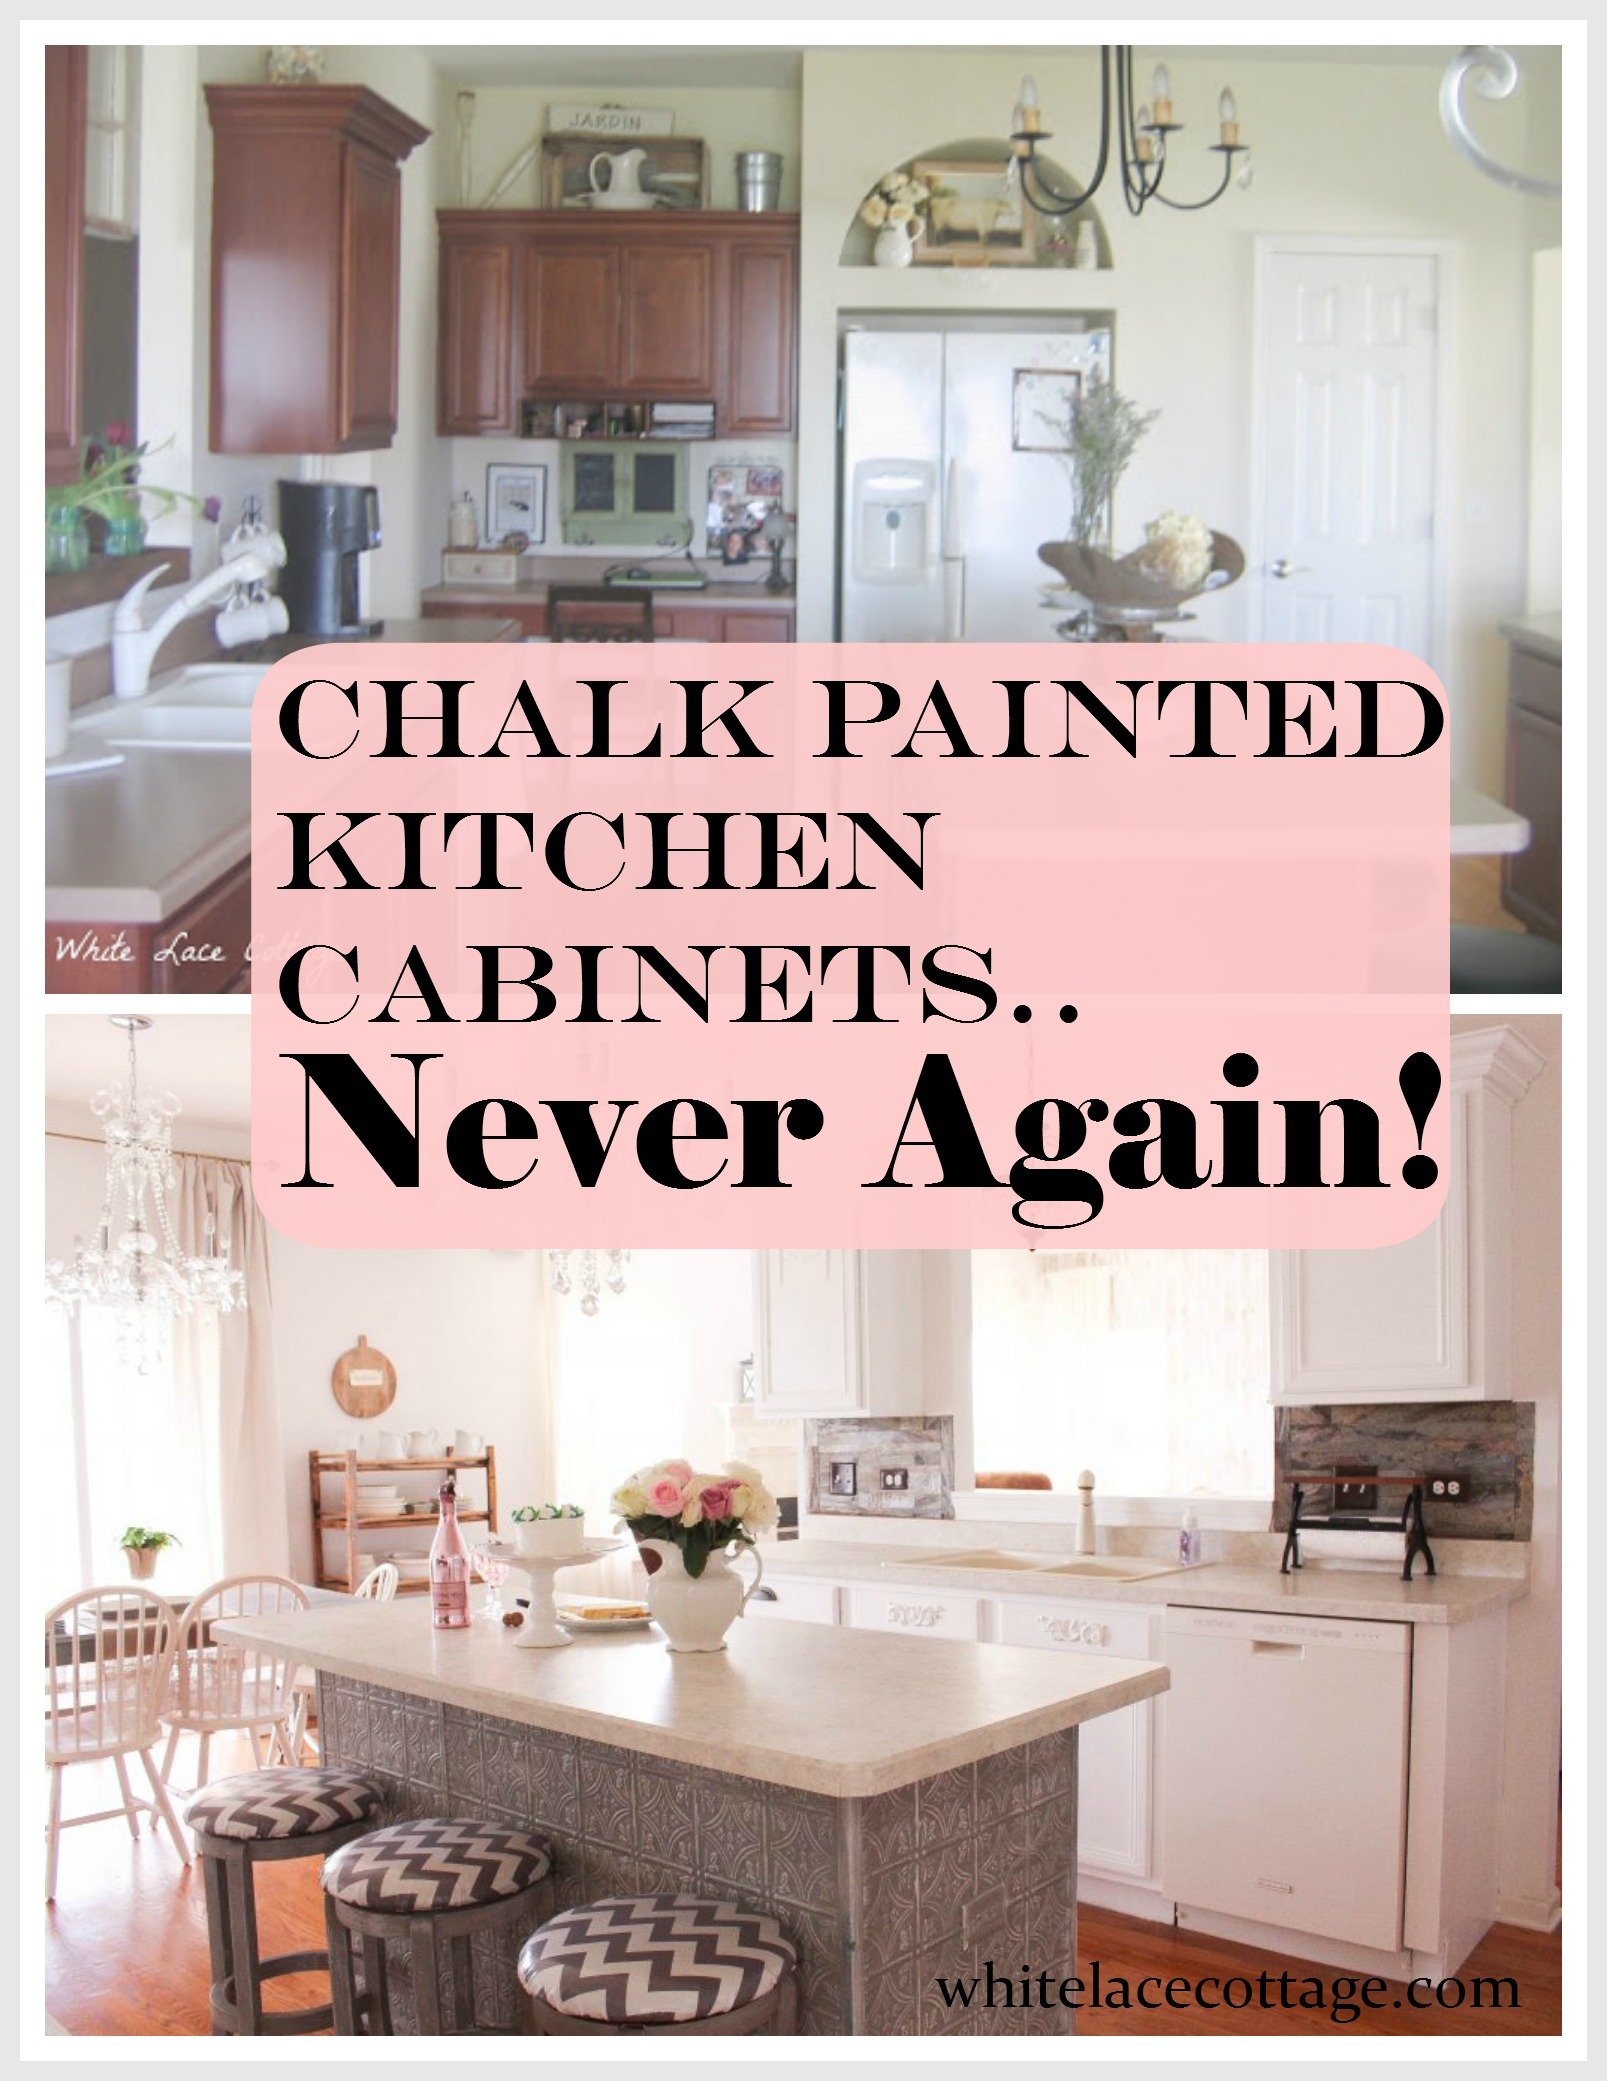 Chalk Paint Kitchen Chalk Painted Kitchen Cabinets Never Again White Lace Cottage